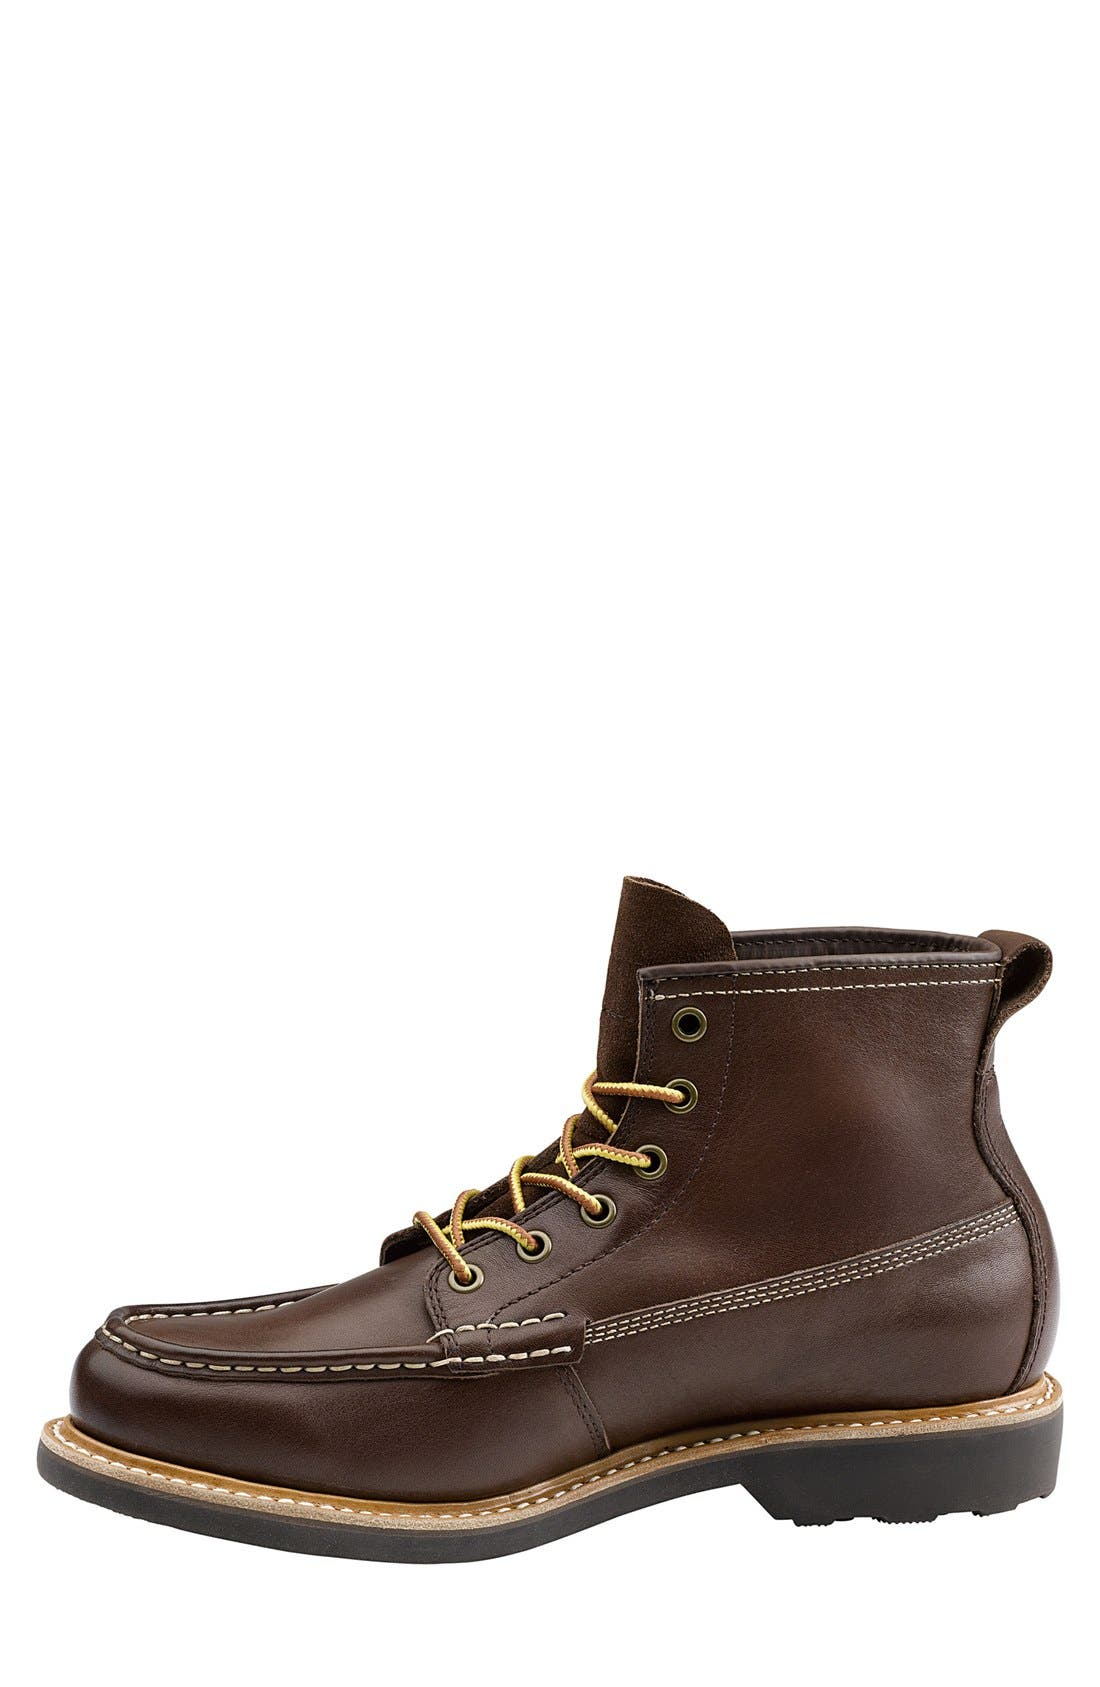 'Ashby' Moc Toe Boot,                             Alternate thumbnail 5, color,